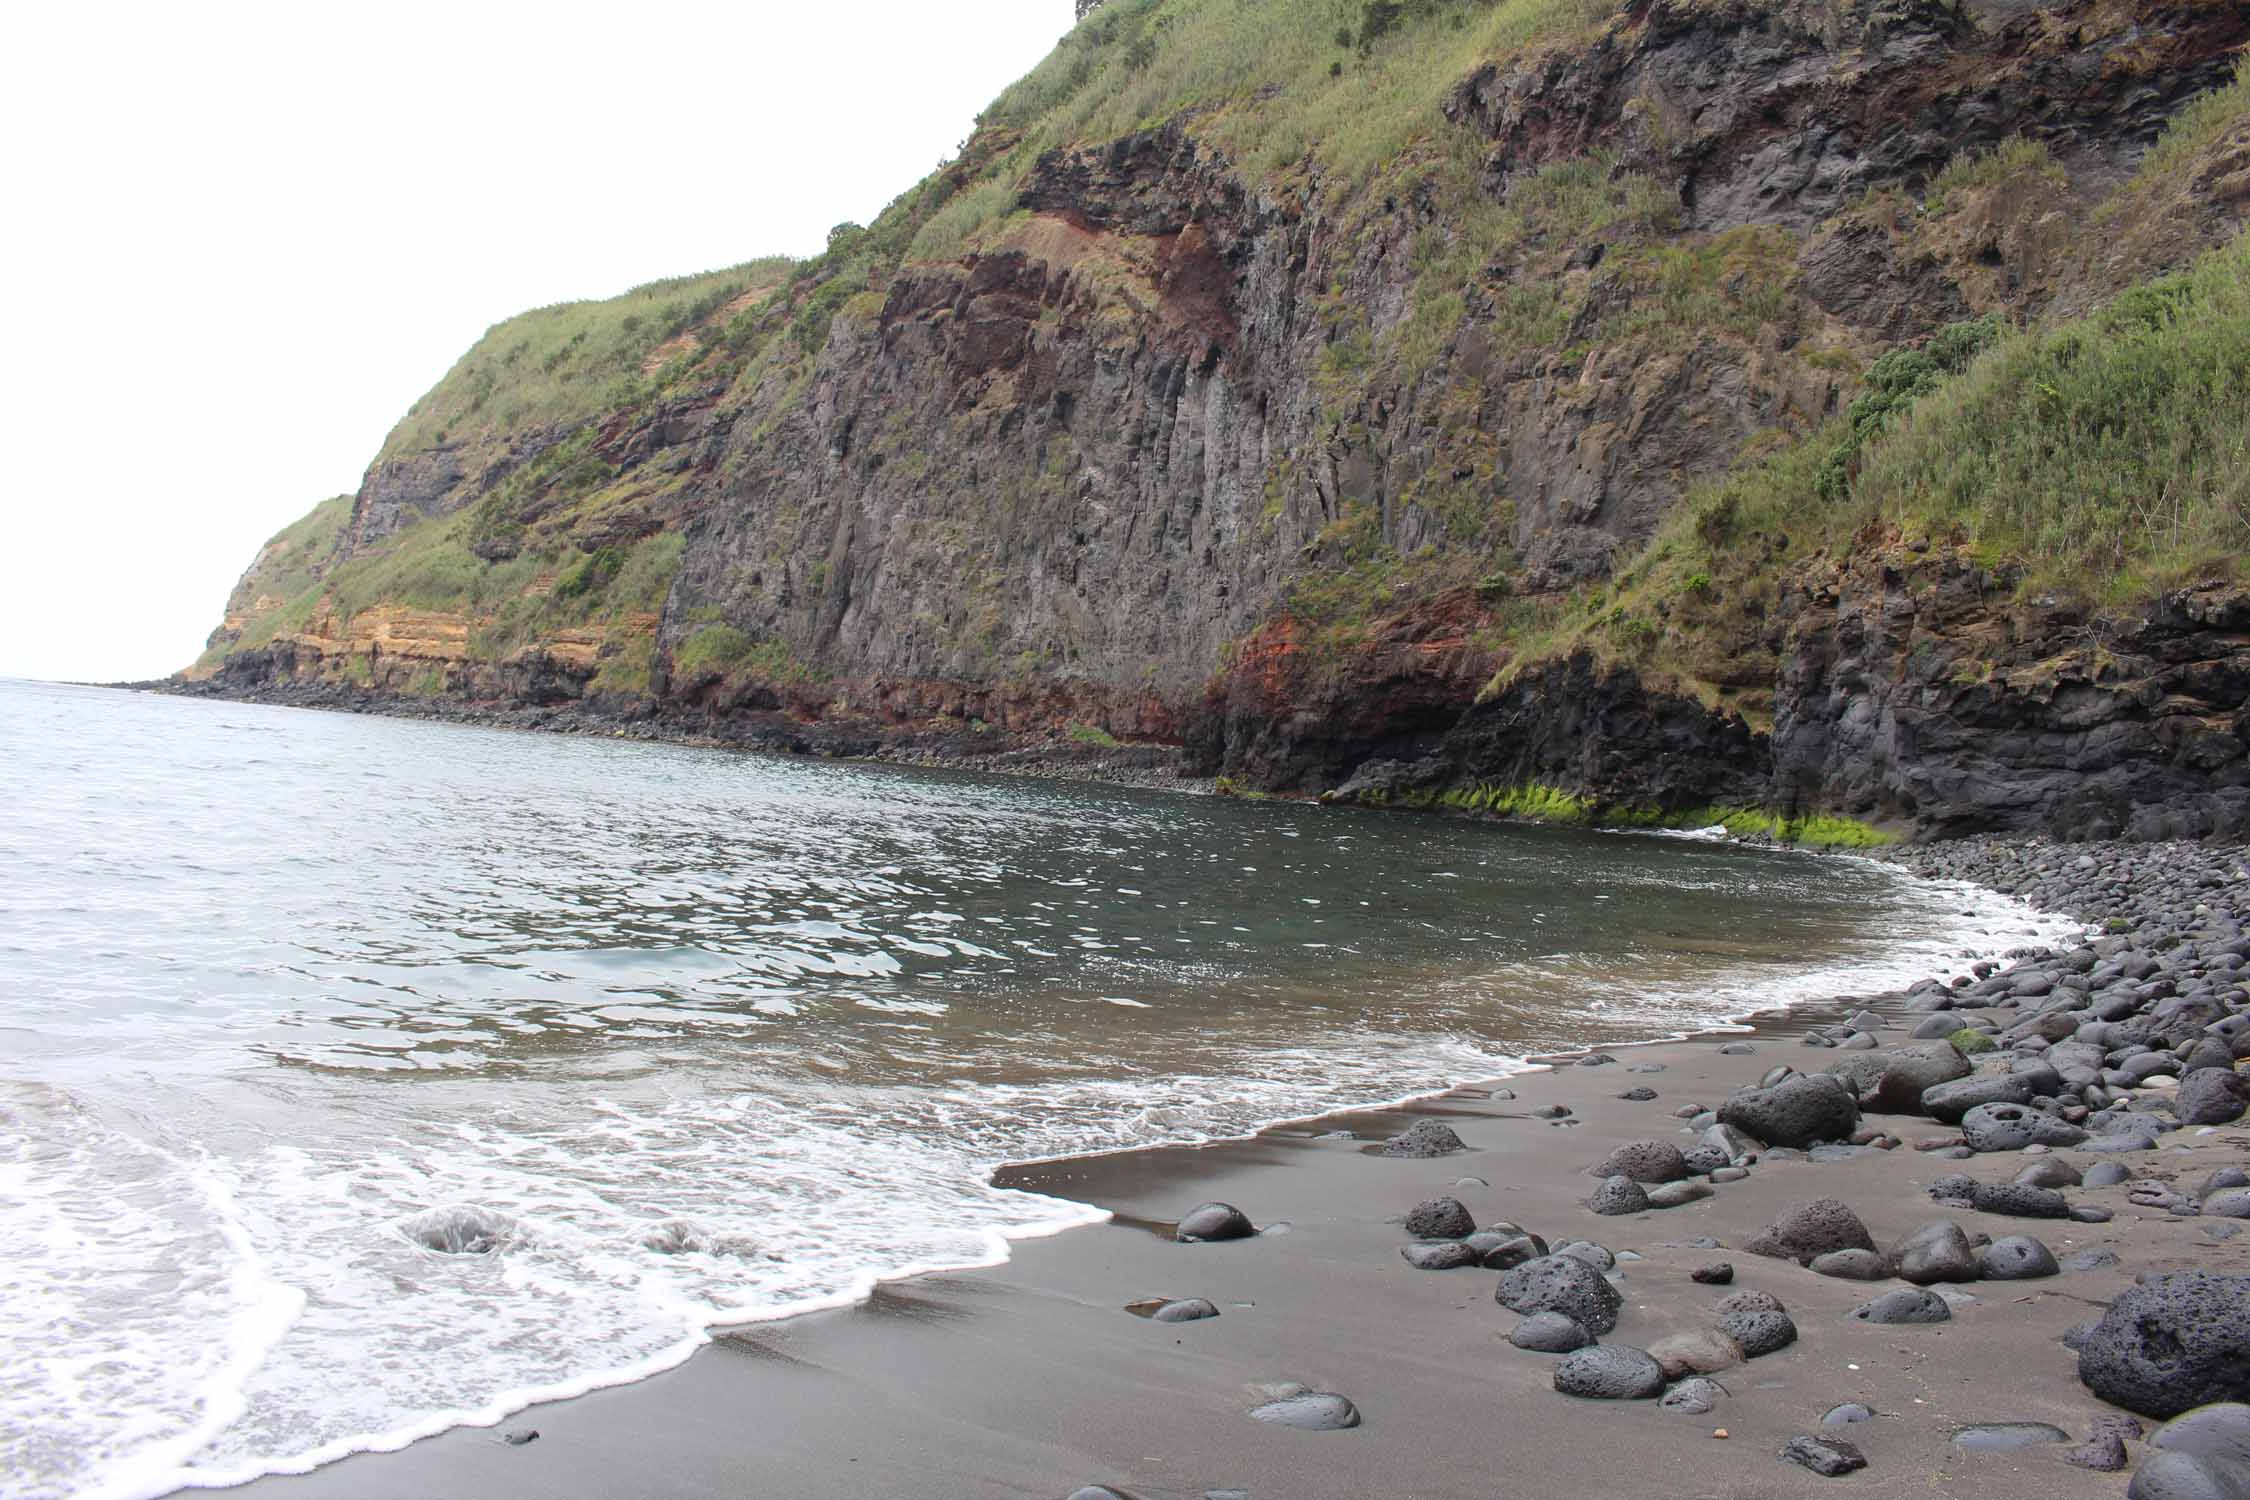 The Caloura beach in São Miguel island, Azores